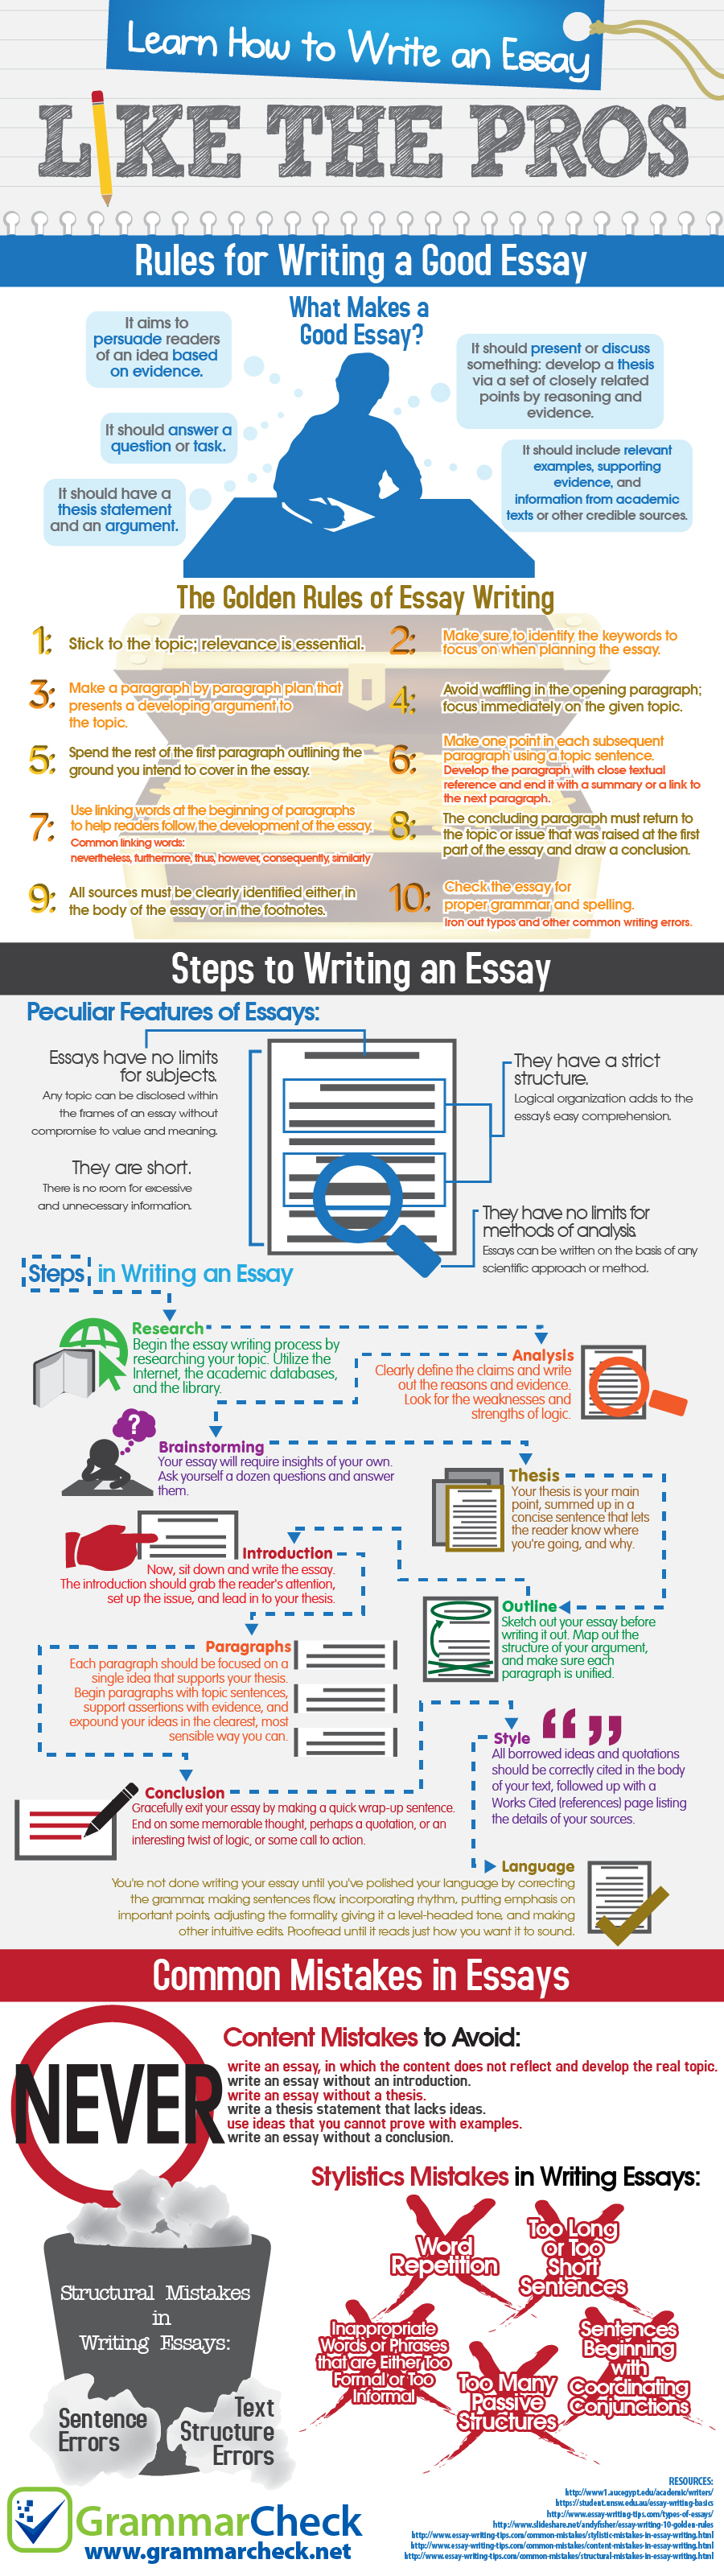 pro essay writing Writing services nerdpro writing services include custom essay writing help, homework assignment (online) help, case study help, powerpoint presentation help services, thesis help, research paper writing help, resume writing service and more.